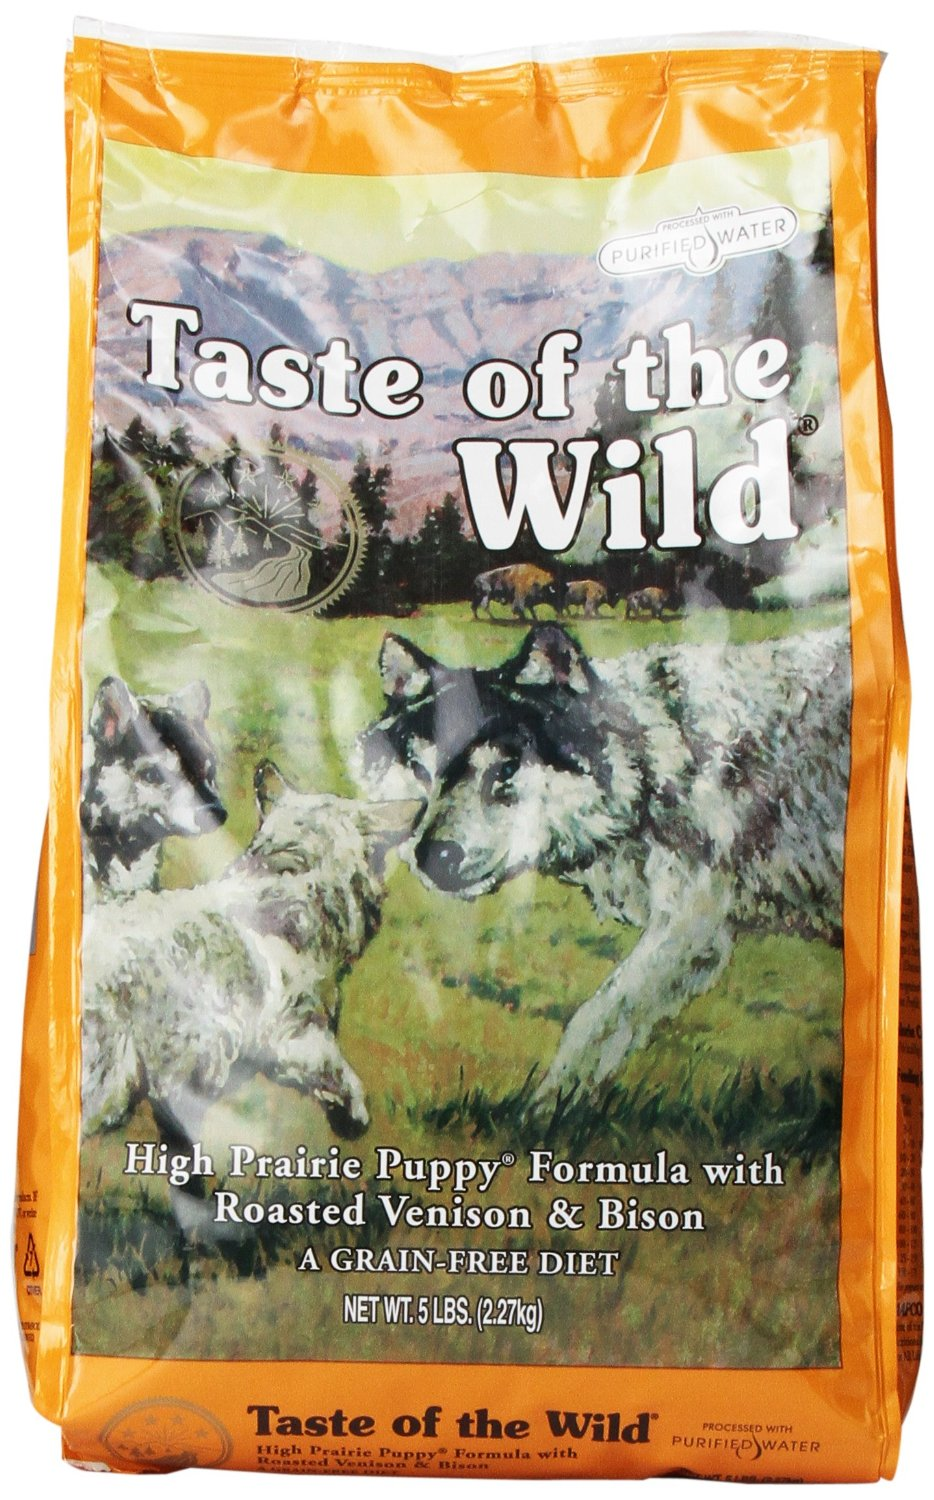 Taste of the Wild High Prairie Puppy Formula Dog Food